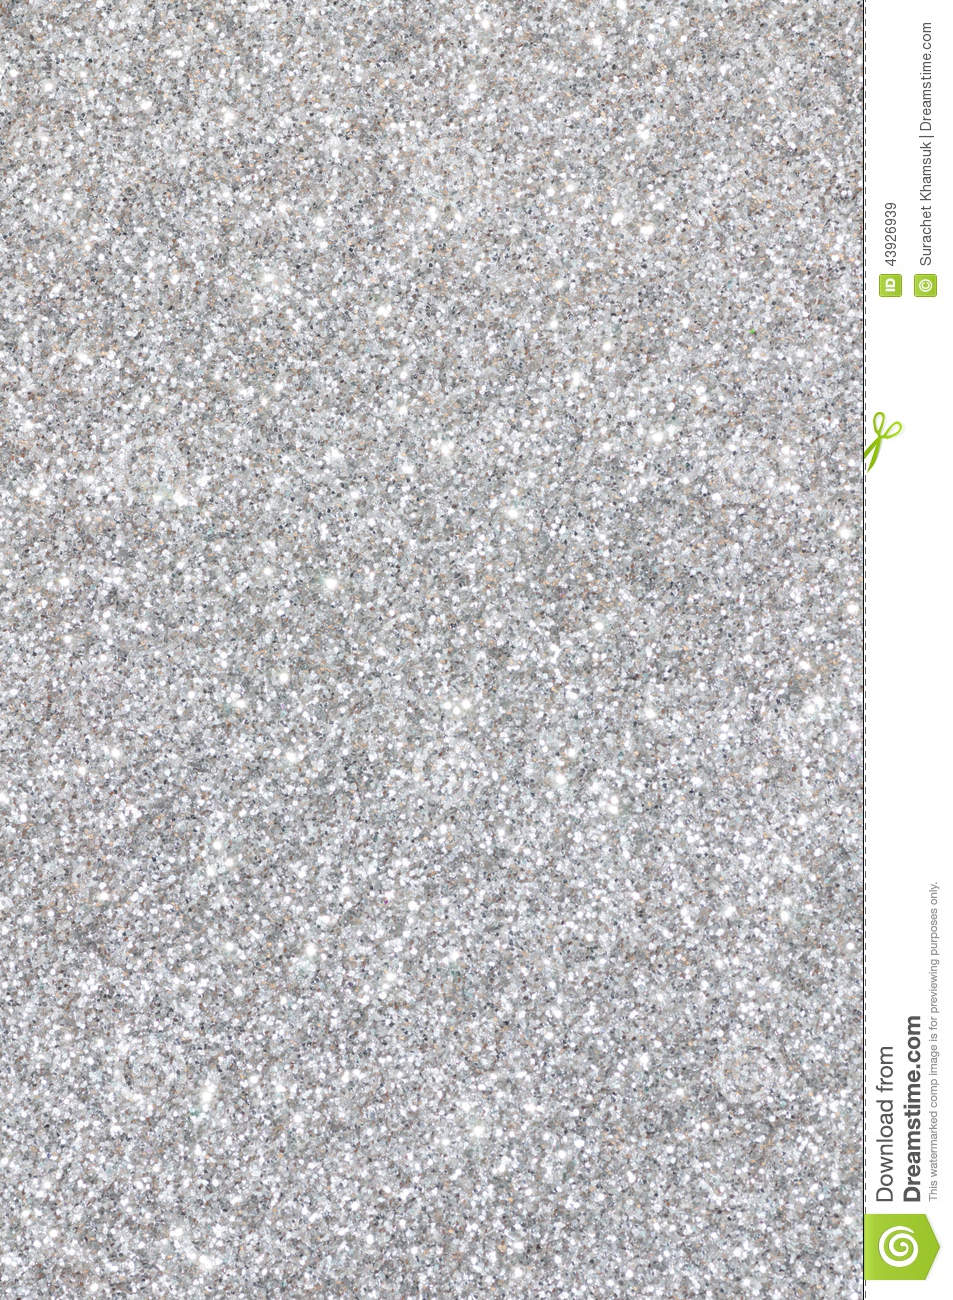 Golden Wallpaper 3d Silver Glitter Texture Background Stock Photo Image